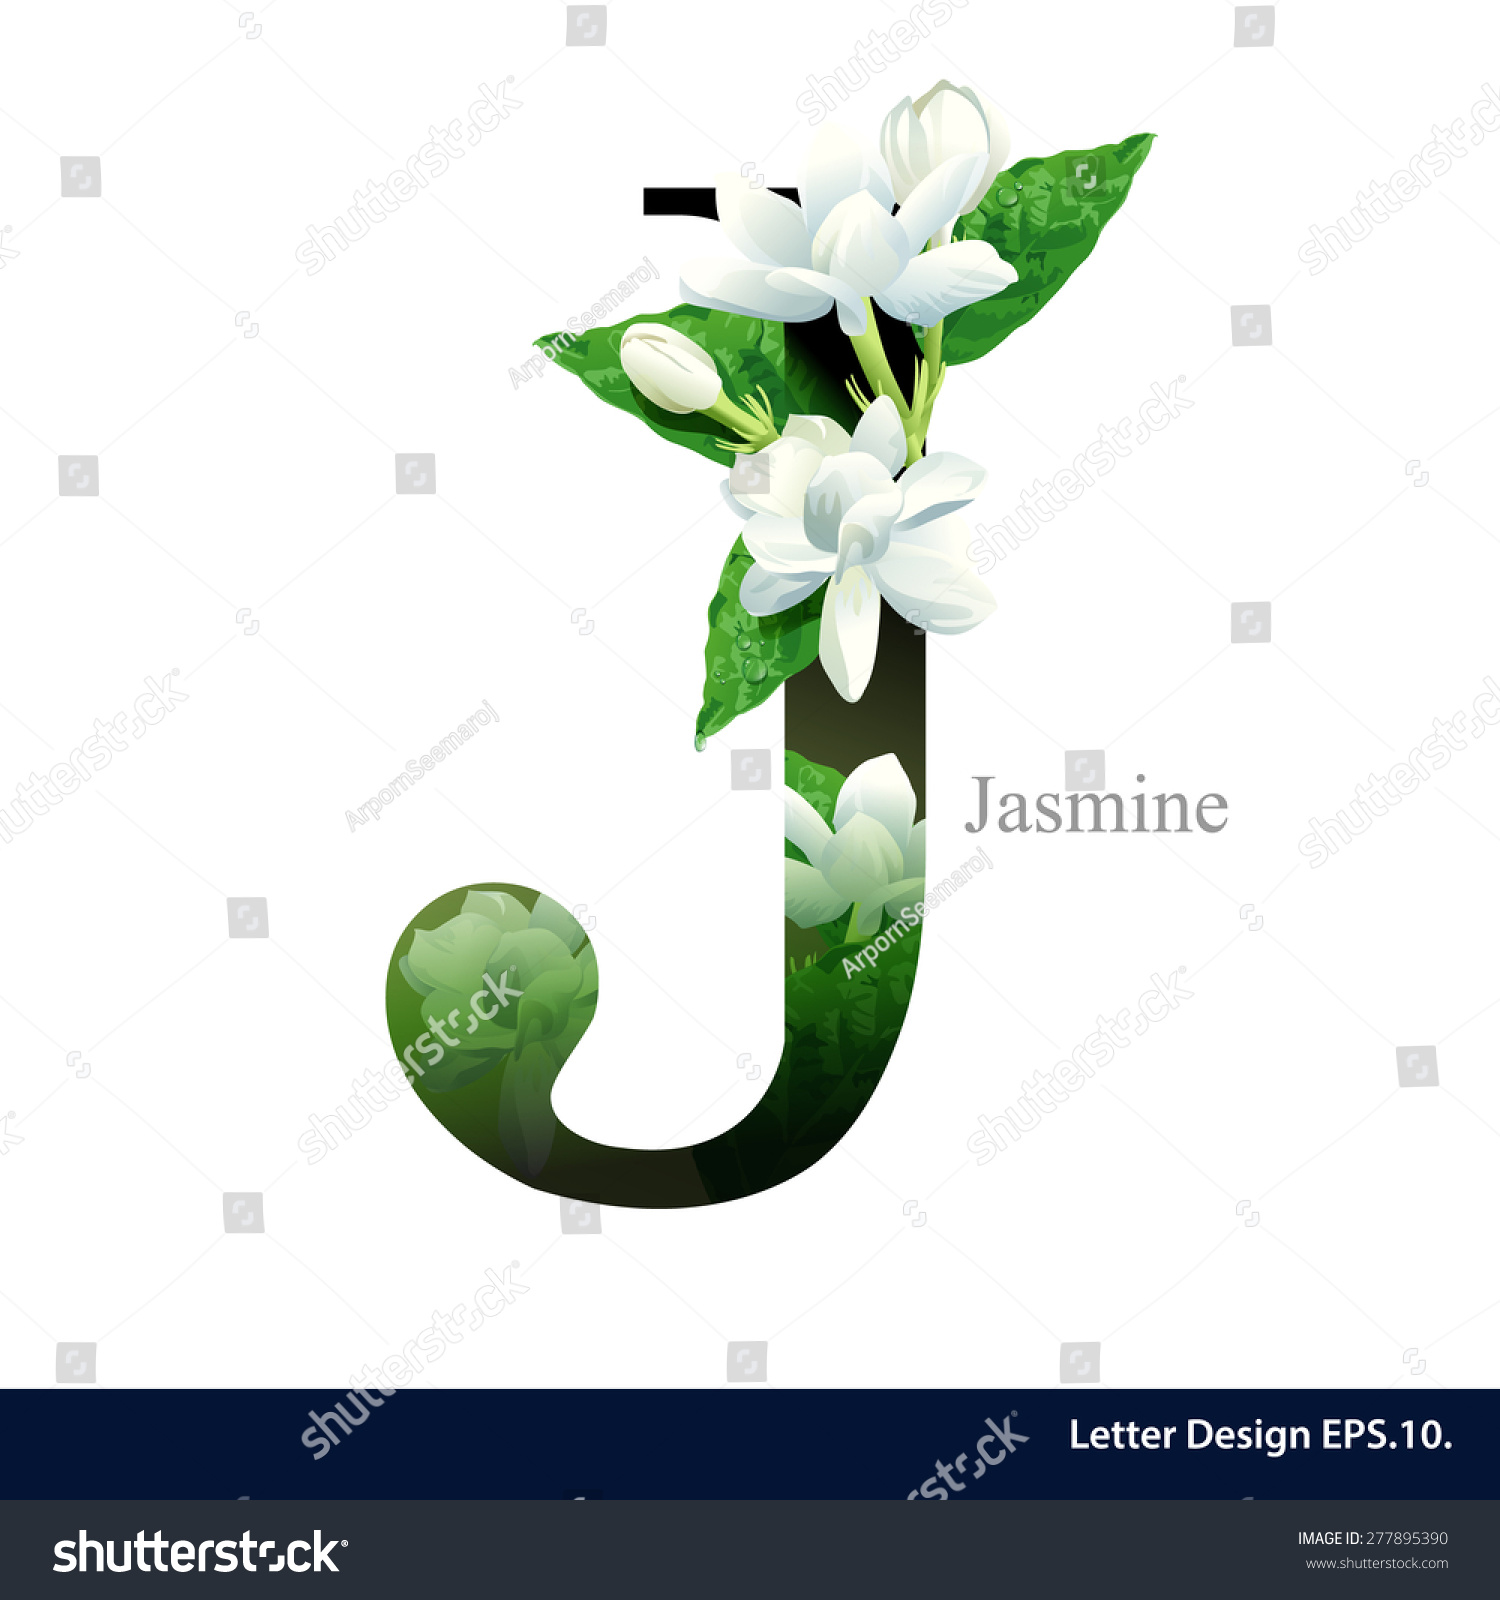 Letter J Vector Alphabet Jasmine Flower Stock Vector Royalty Free